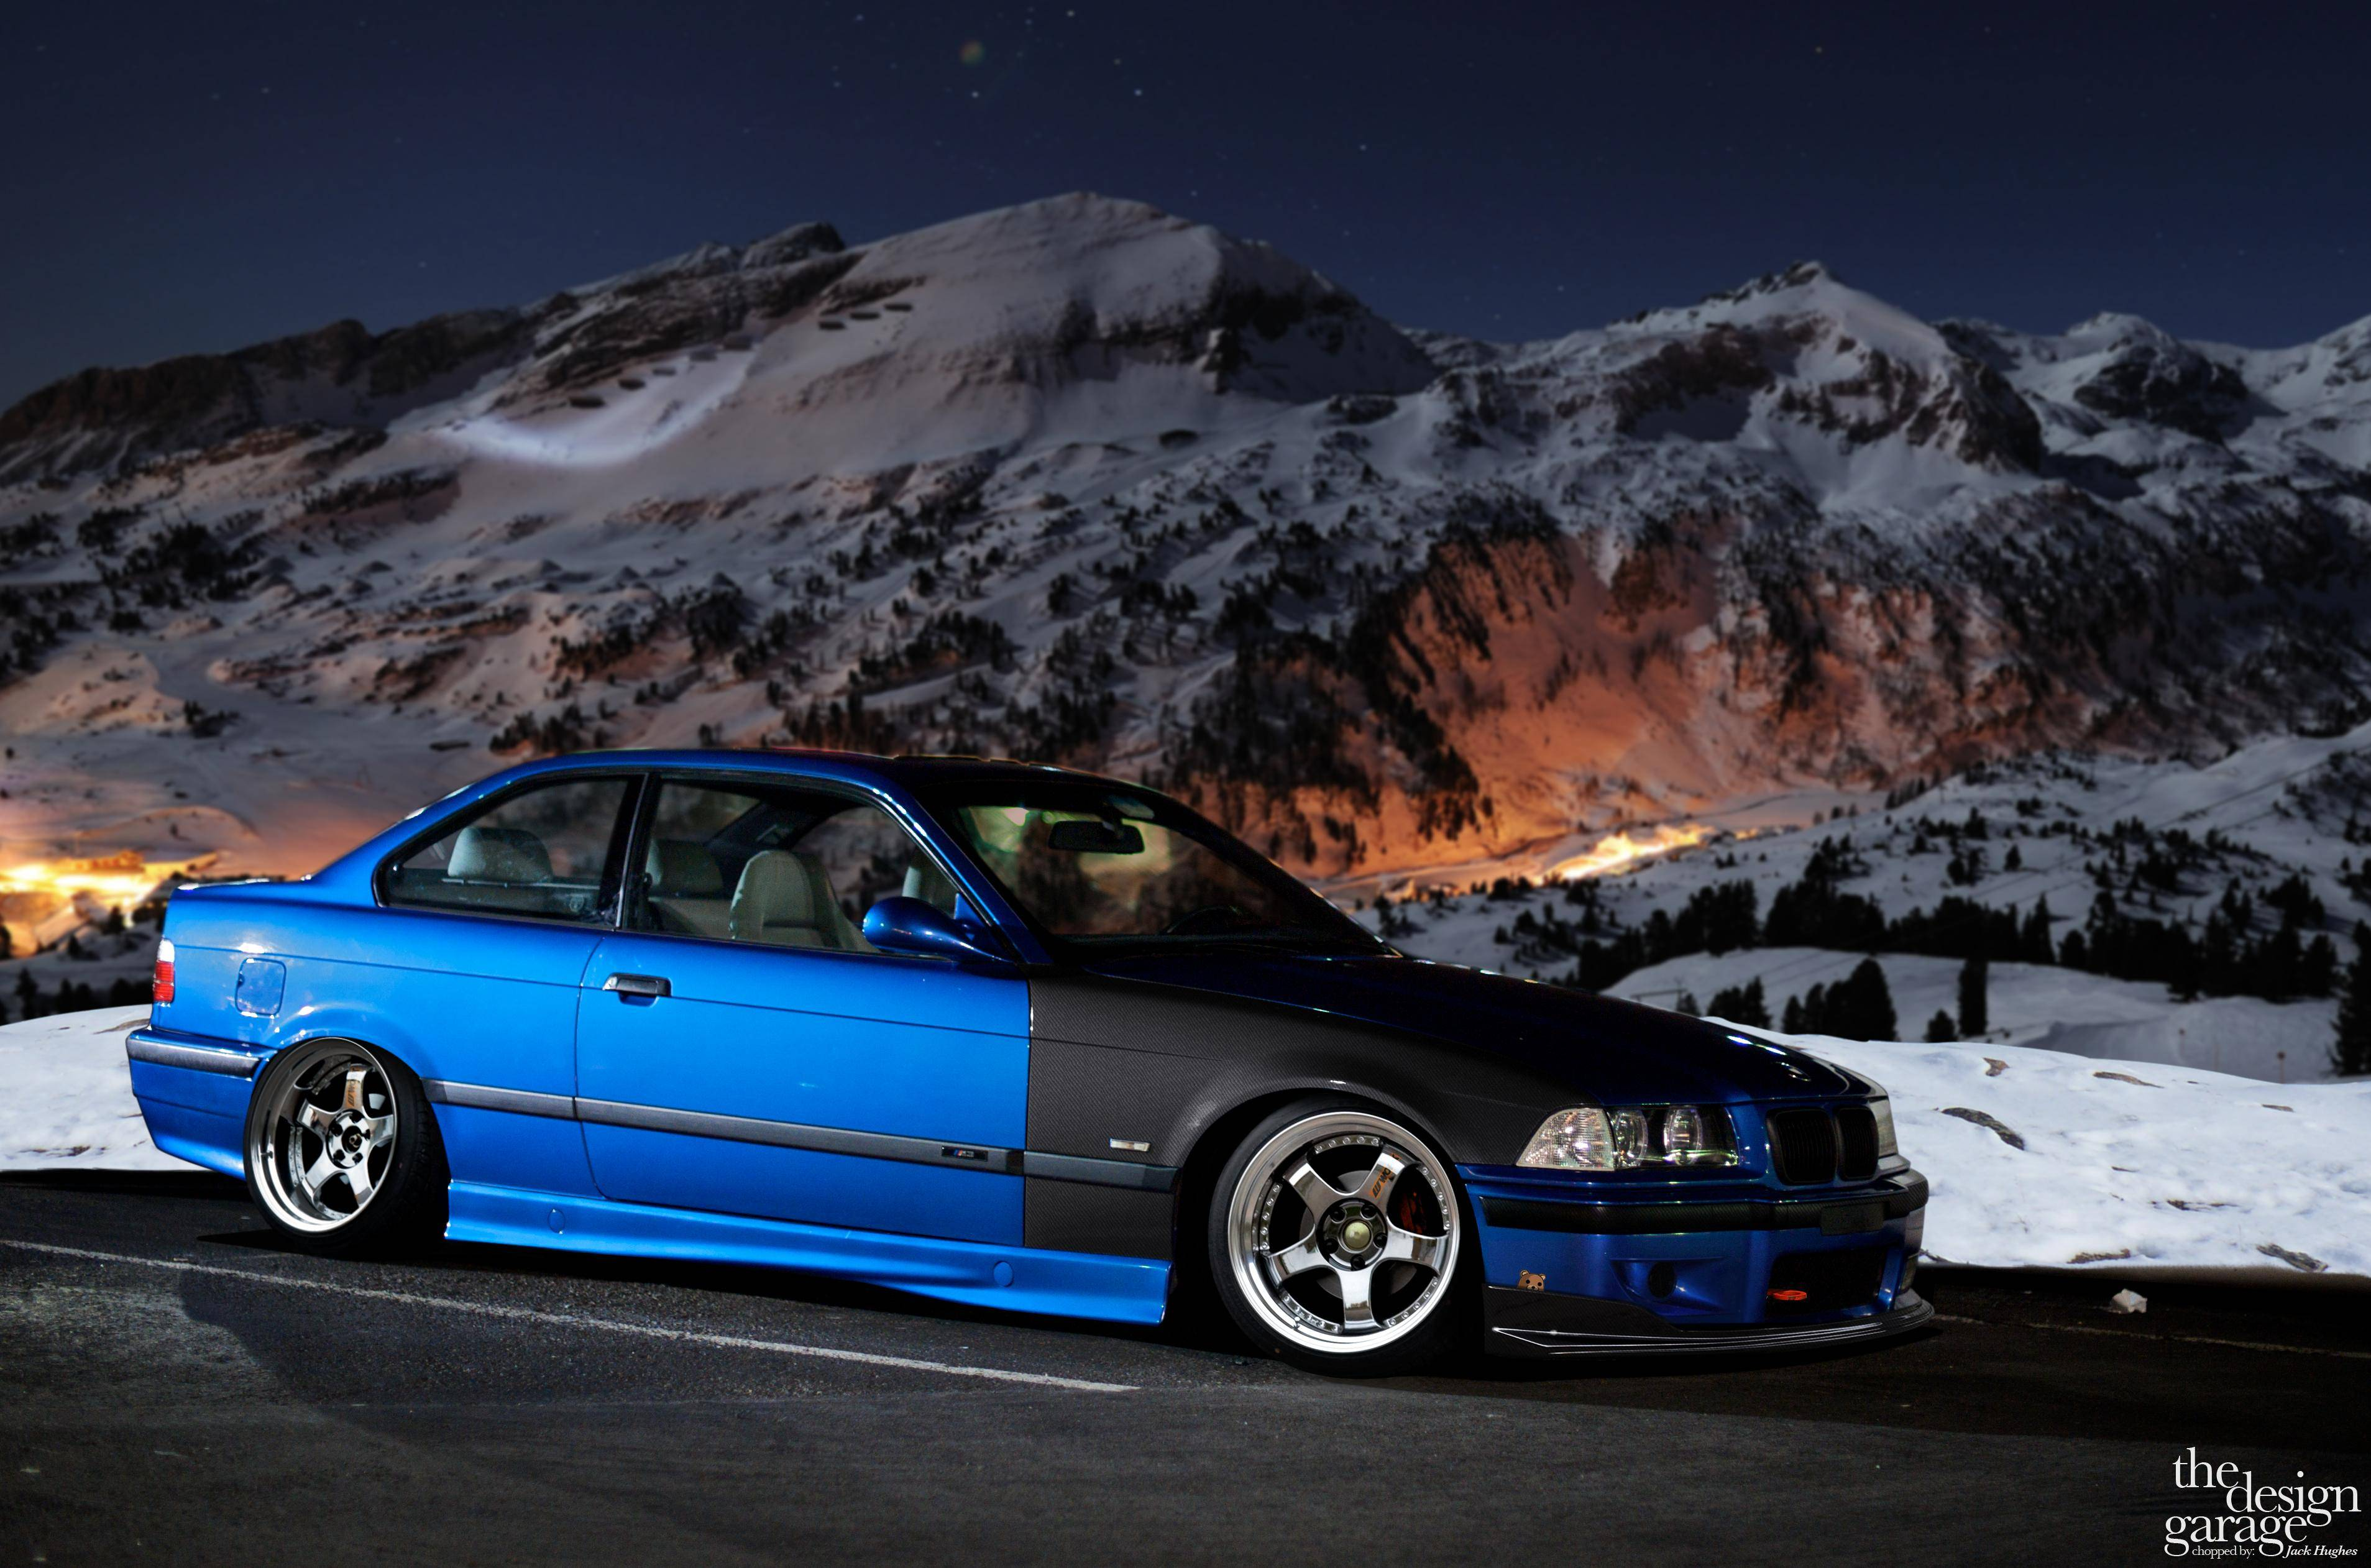 bmw e36 m3 wallpapers wallpaper cave. Black Bedroom Furniture Sets. Home Design Ideas